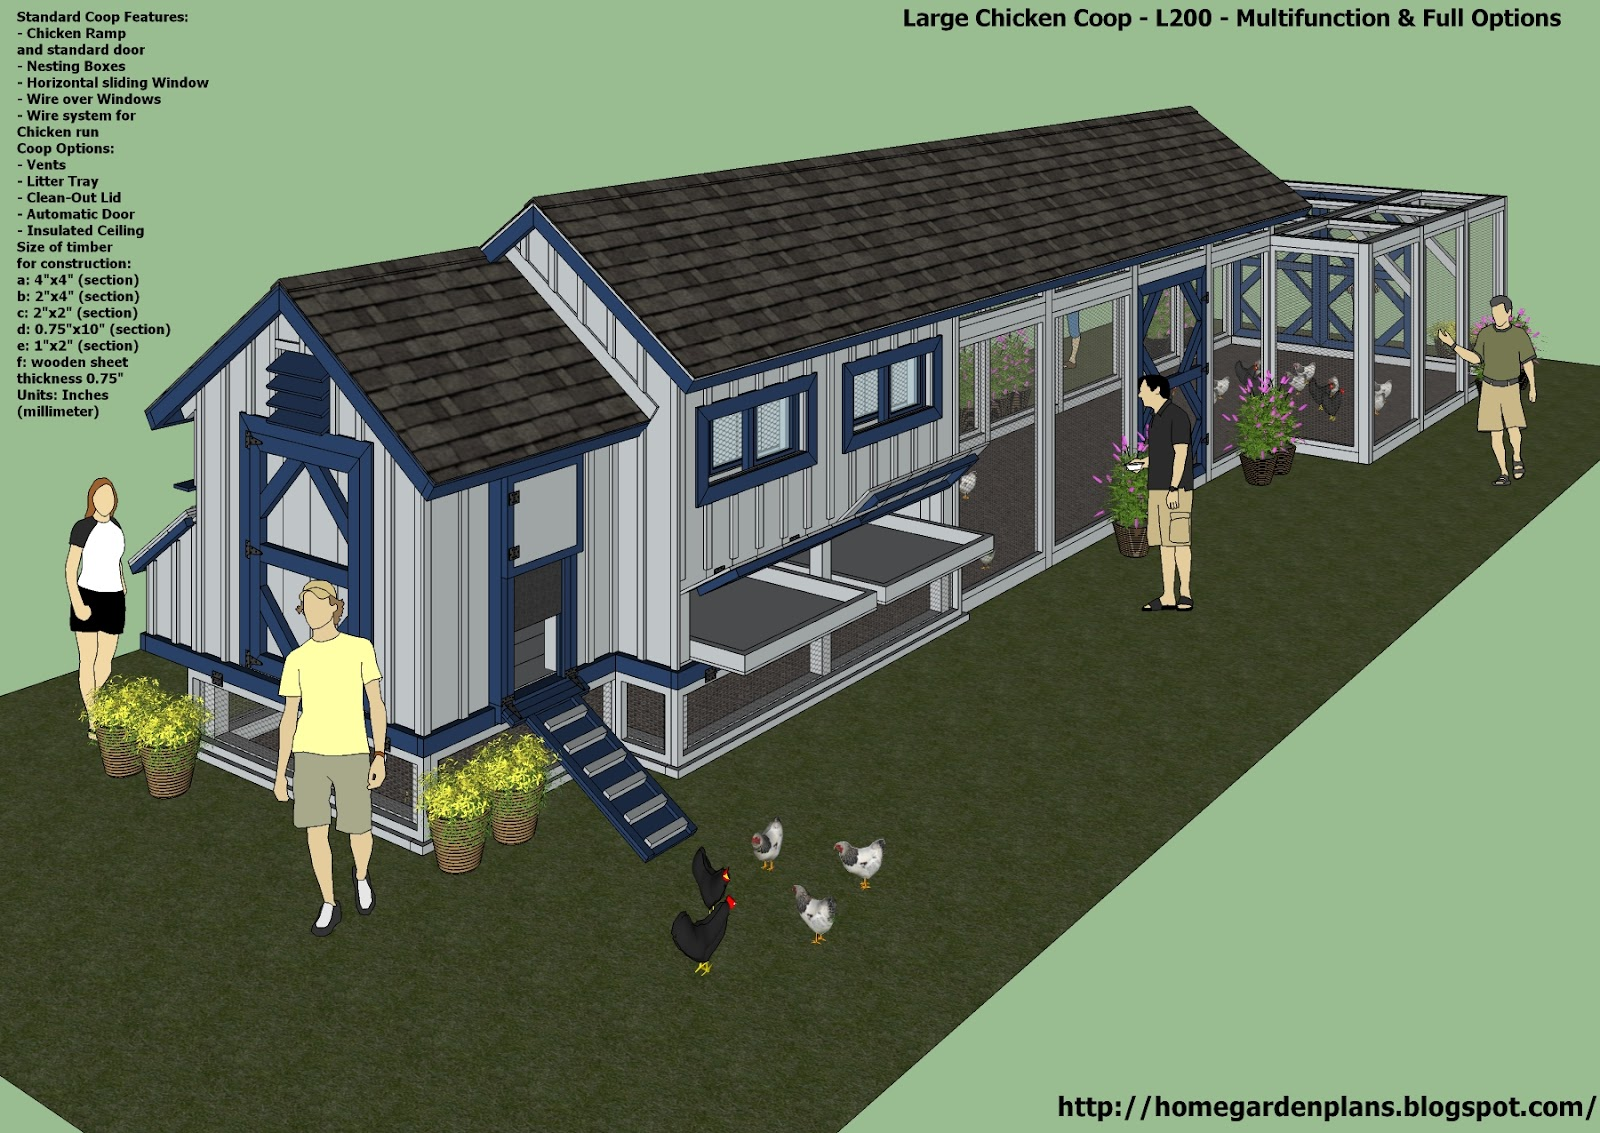 Home garden plans l200 large chicken coop plans how for Free coop plans